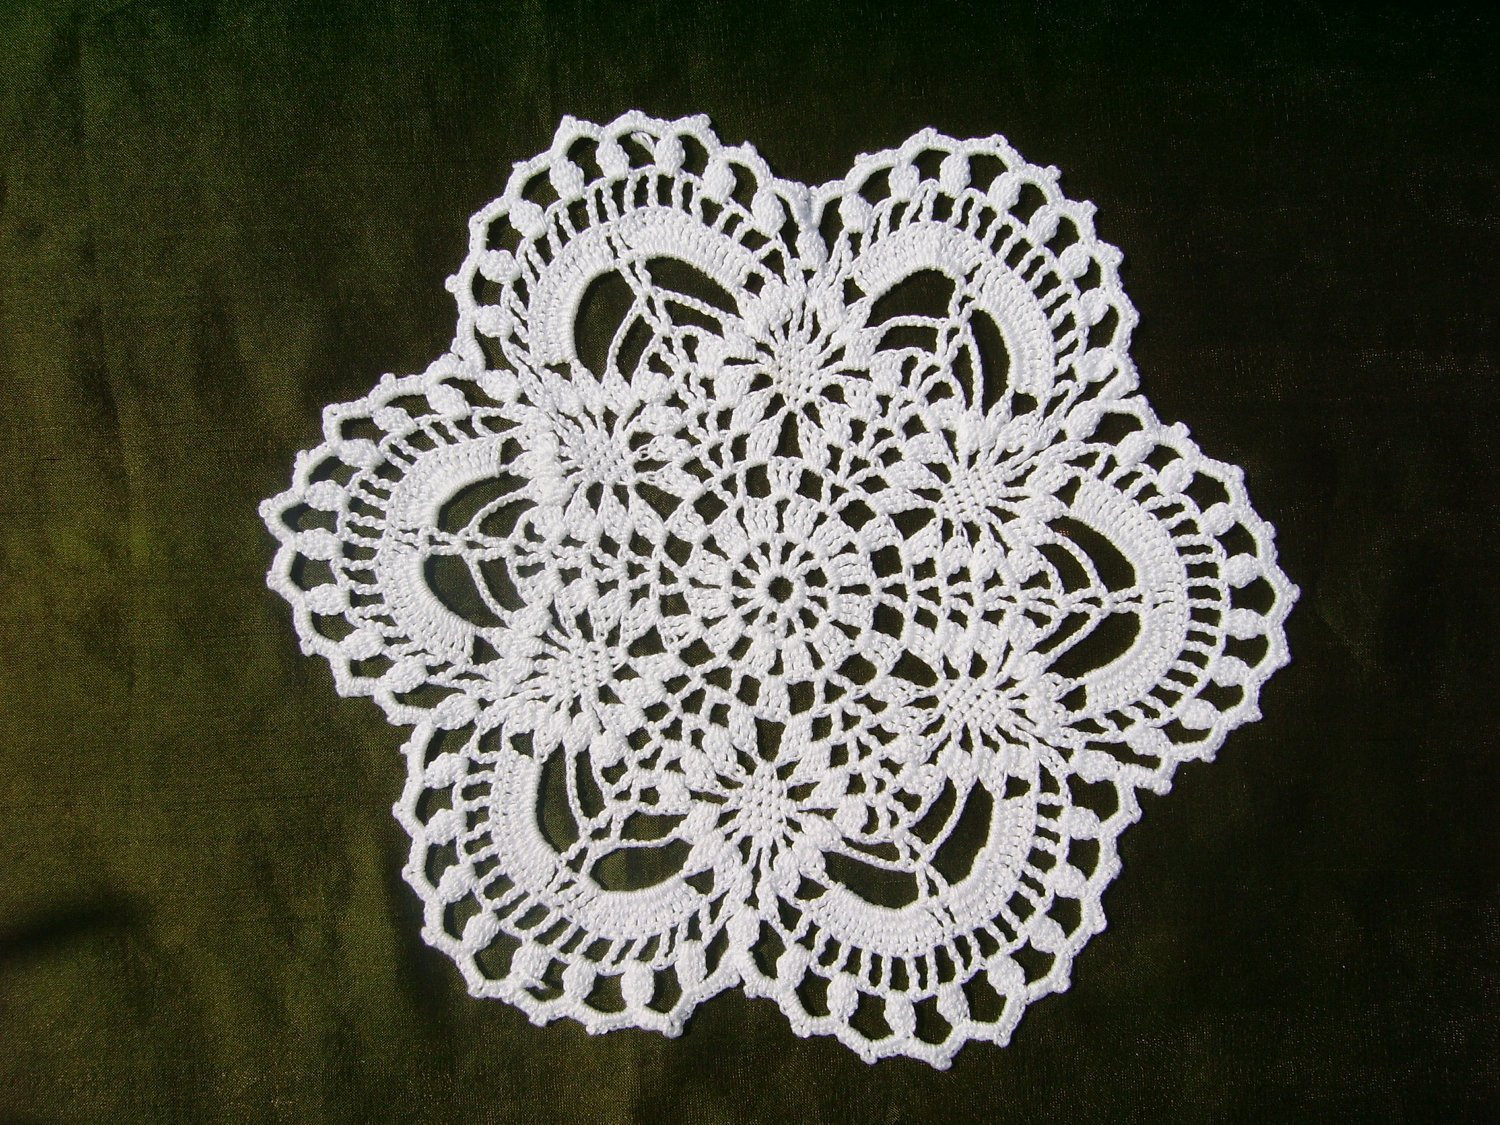 Doily Patterns Awesome Small Crochet Doily White Doilies Round 9 Inches Lace Of Innovative 50 Models Doily Patterns